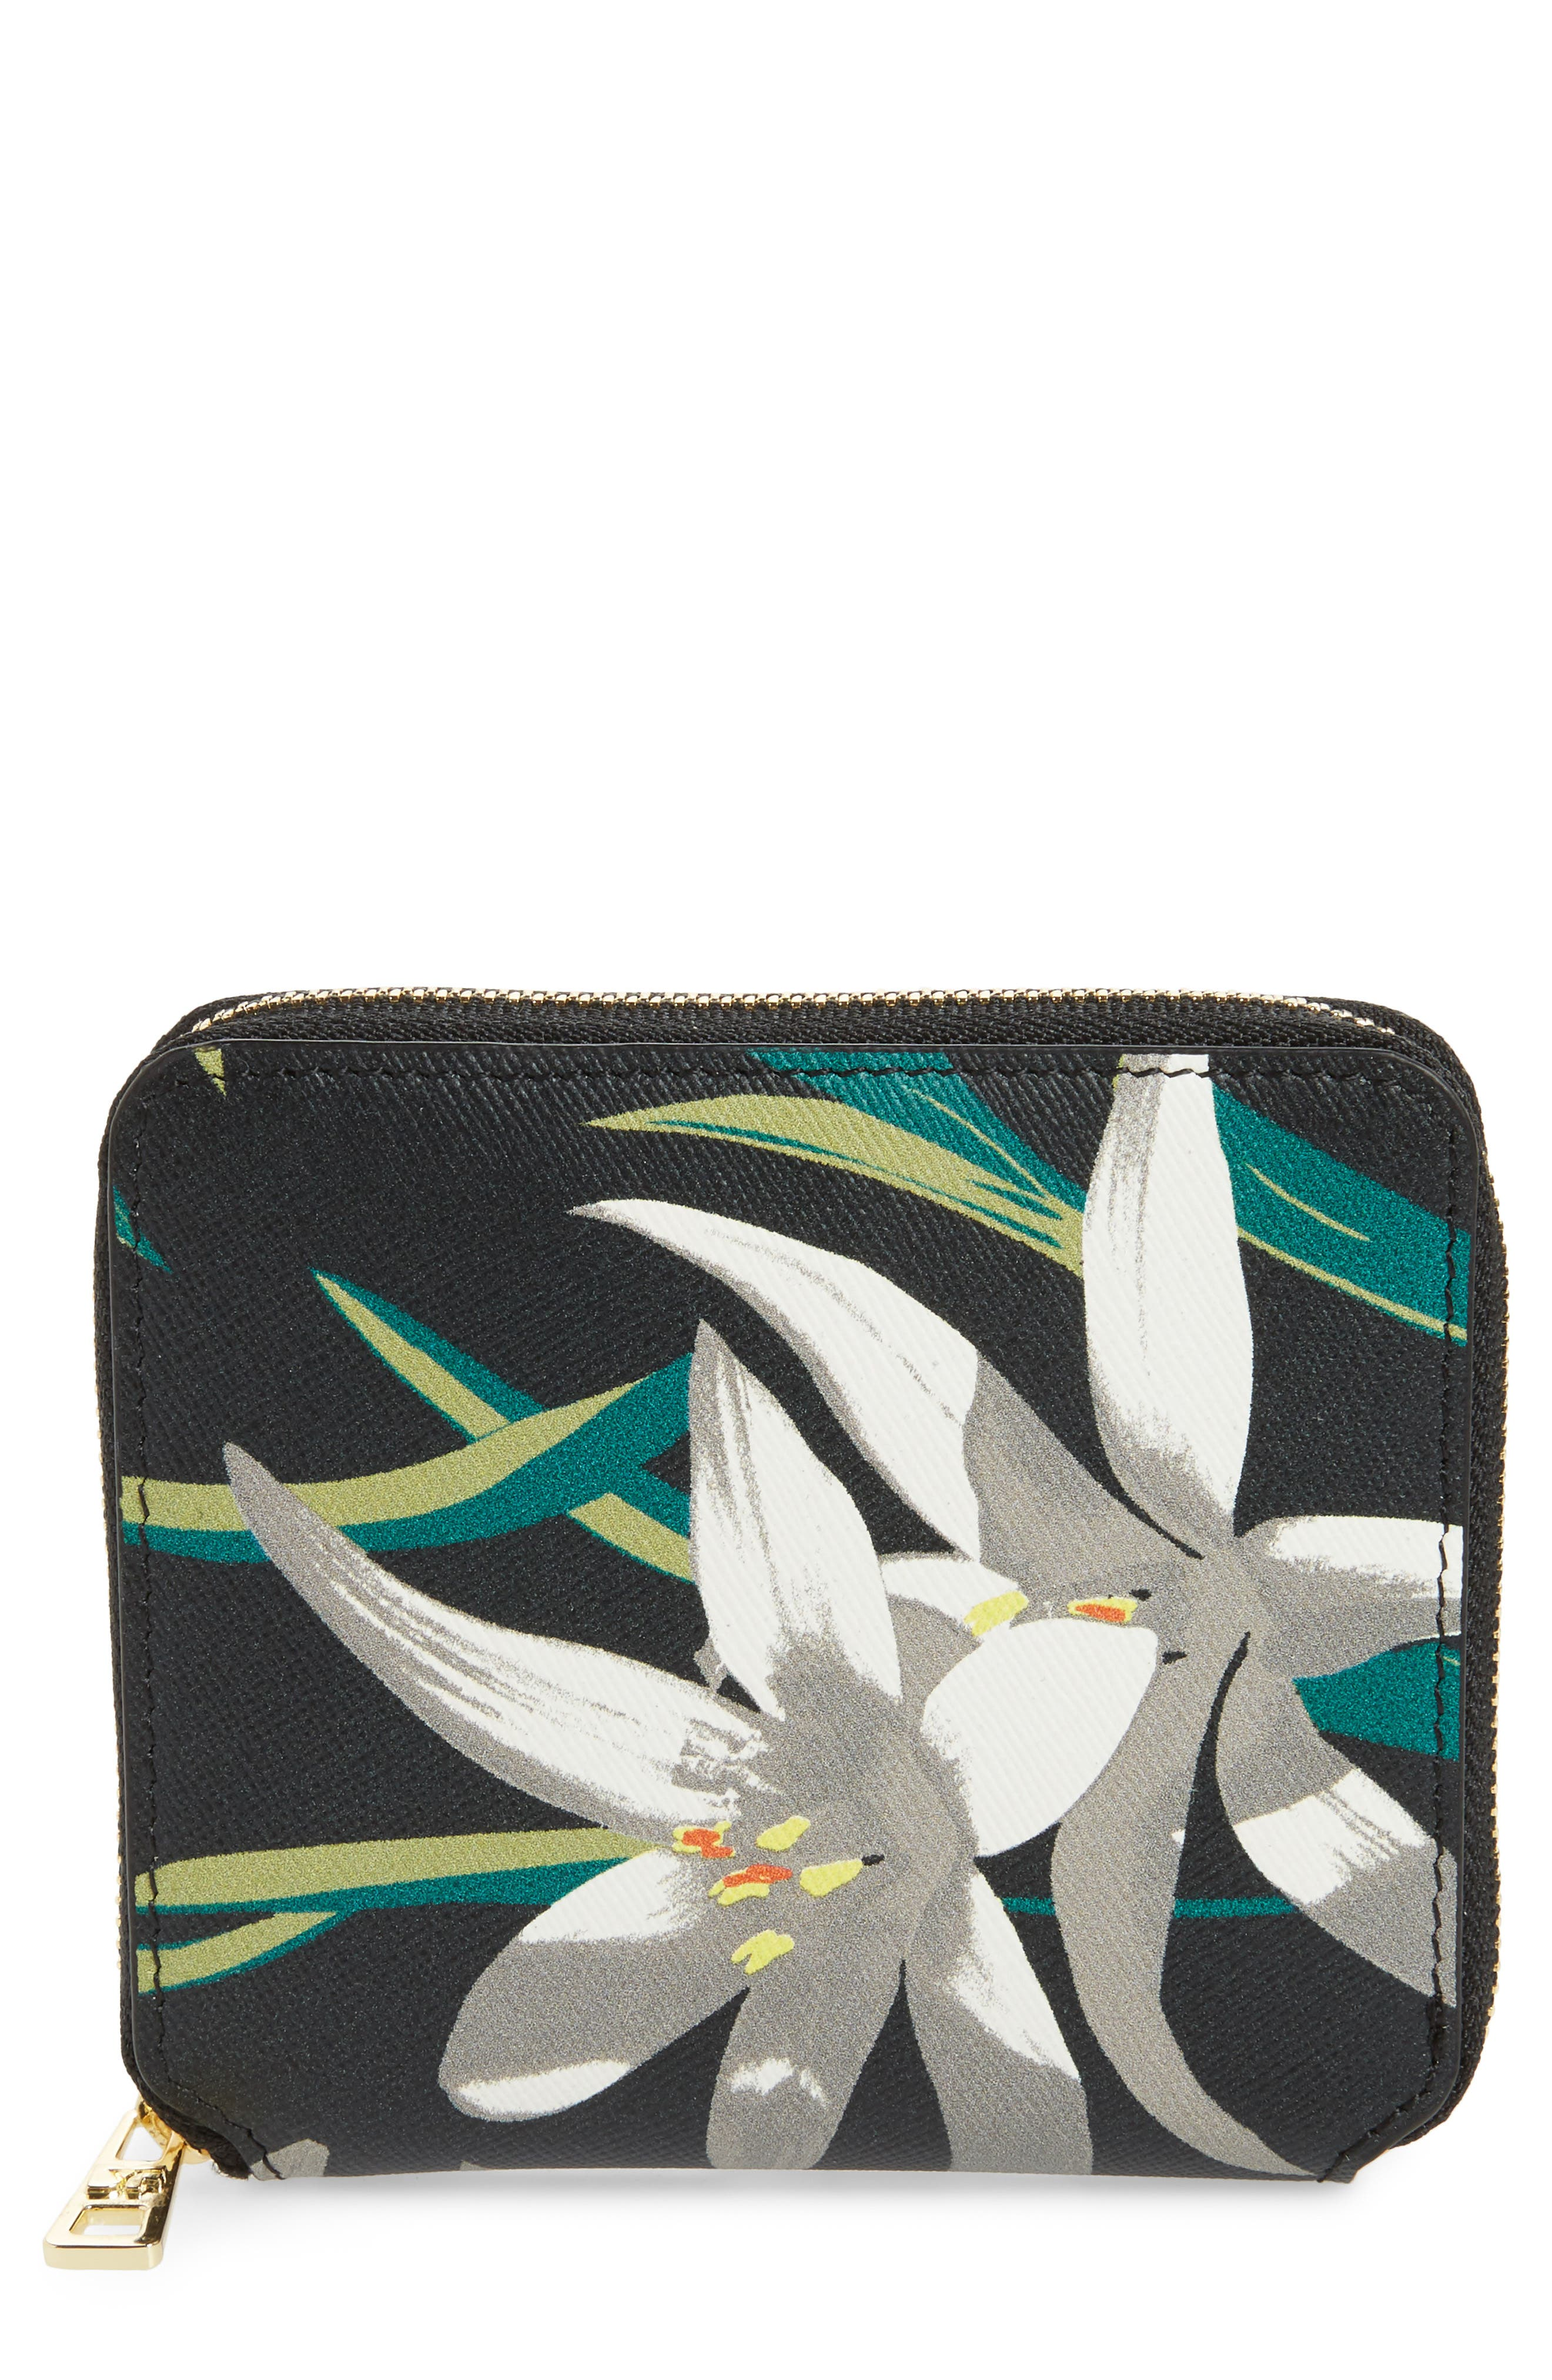 Small Leather Zip Wallet,                             Main thumbnail 1, color,                             Harlow Black